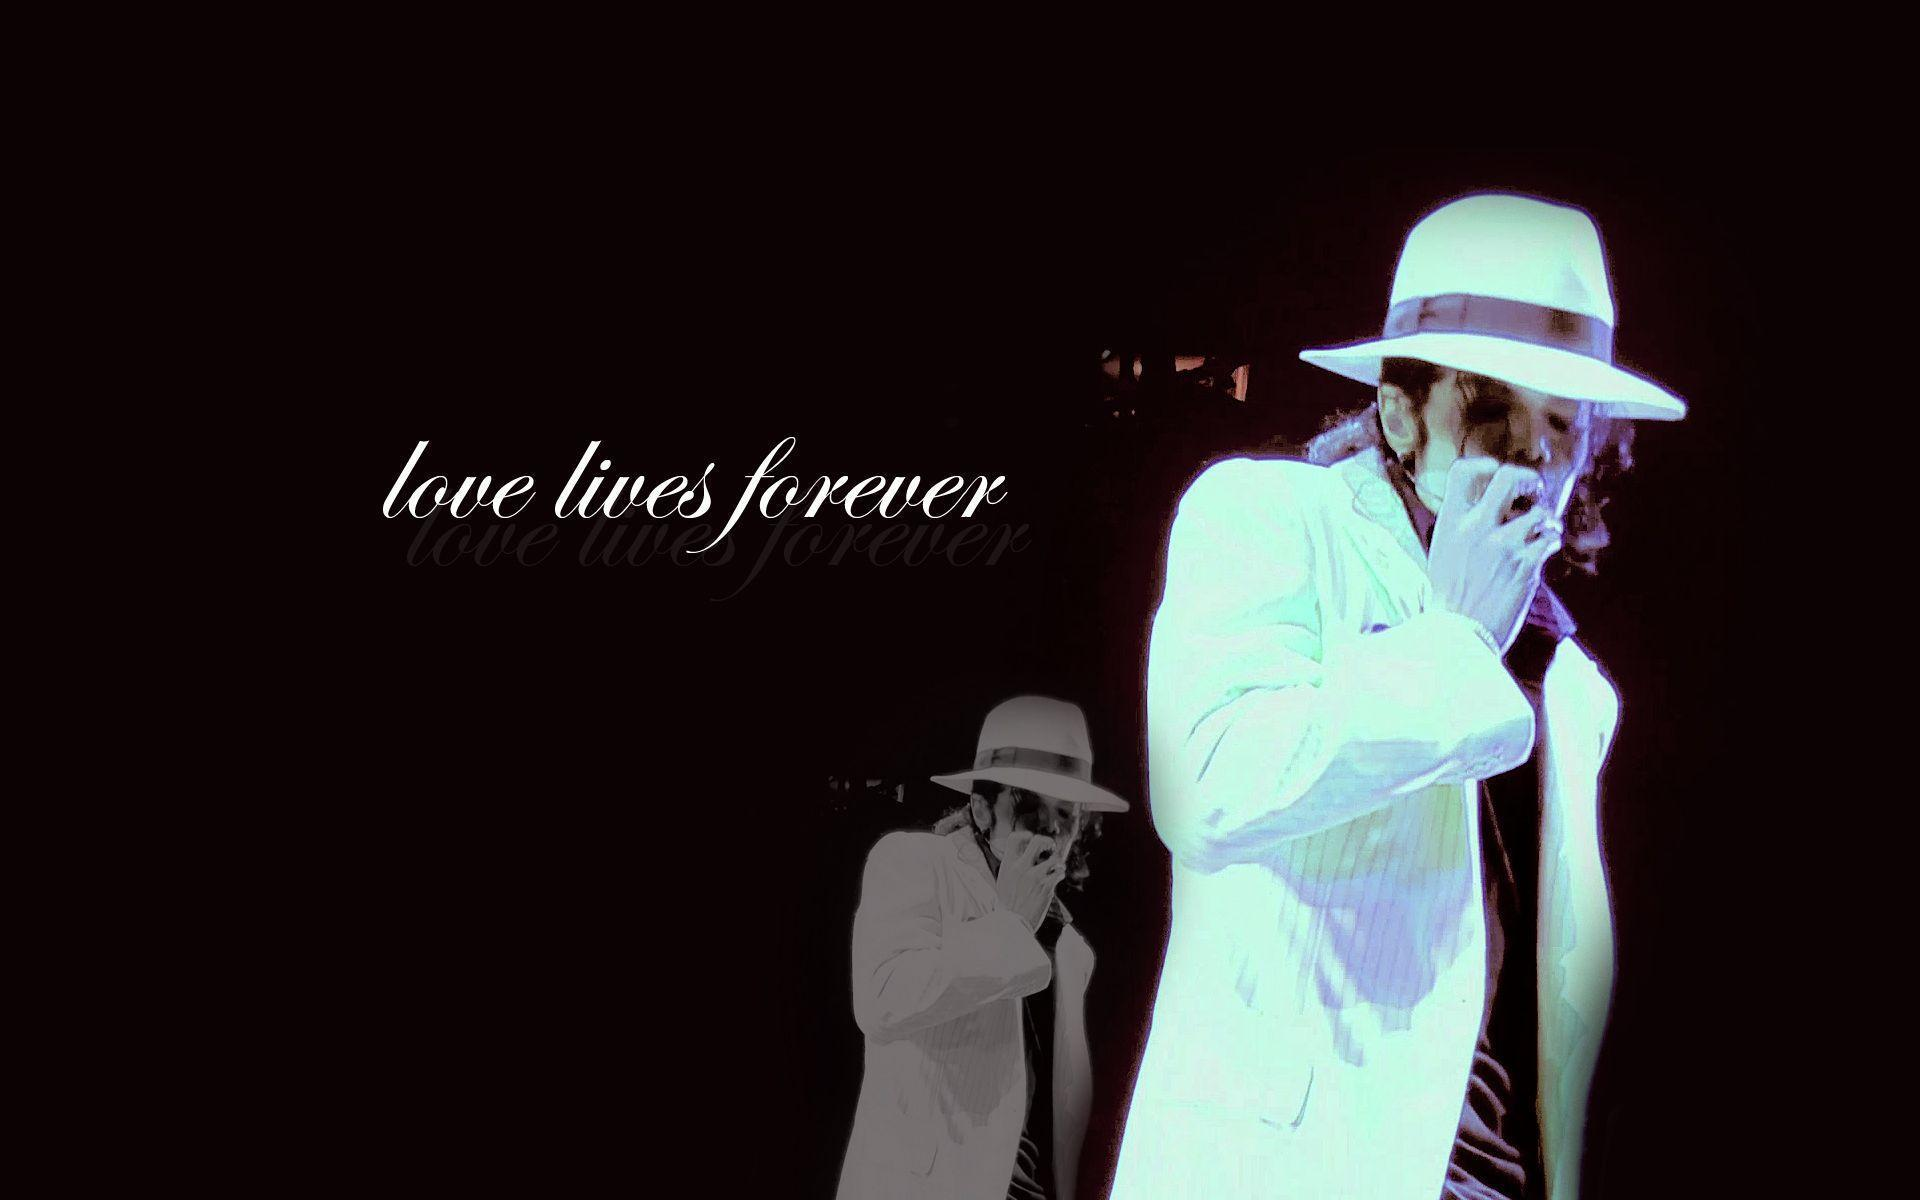 MJ▲ - Michael Jackson Wallpaper (23488178) - Fanpop